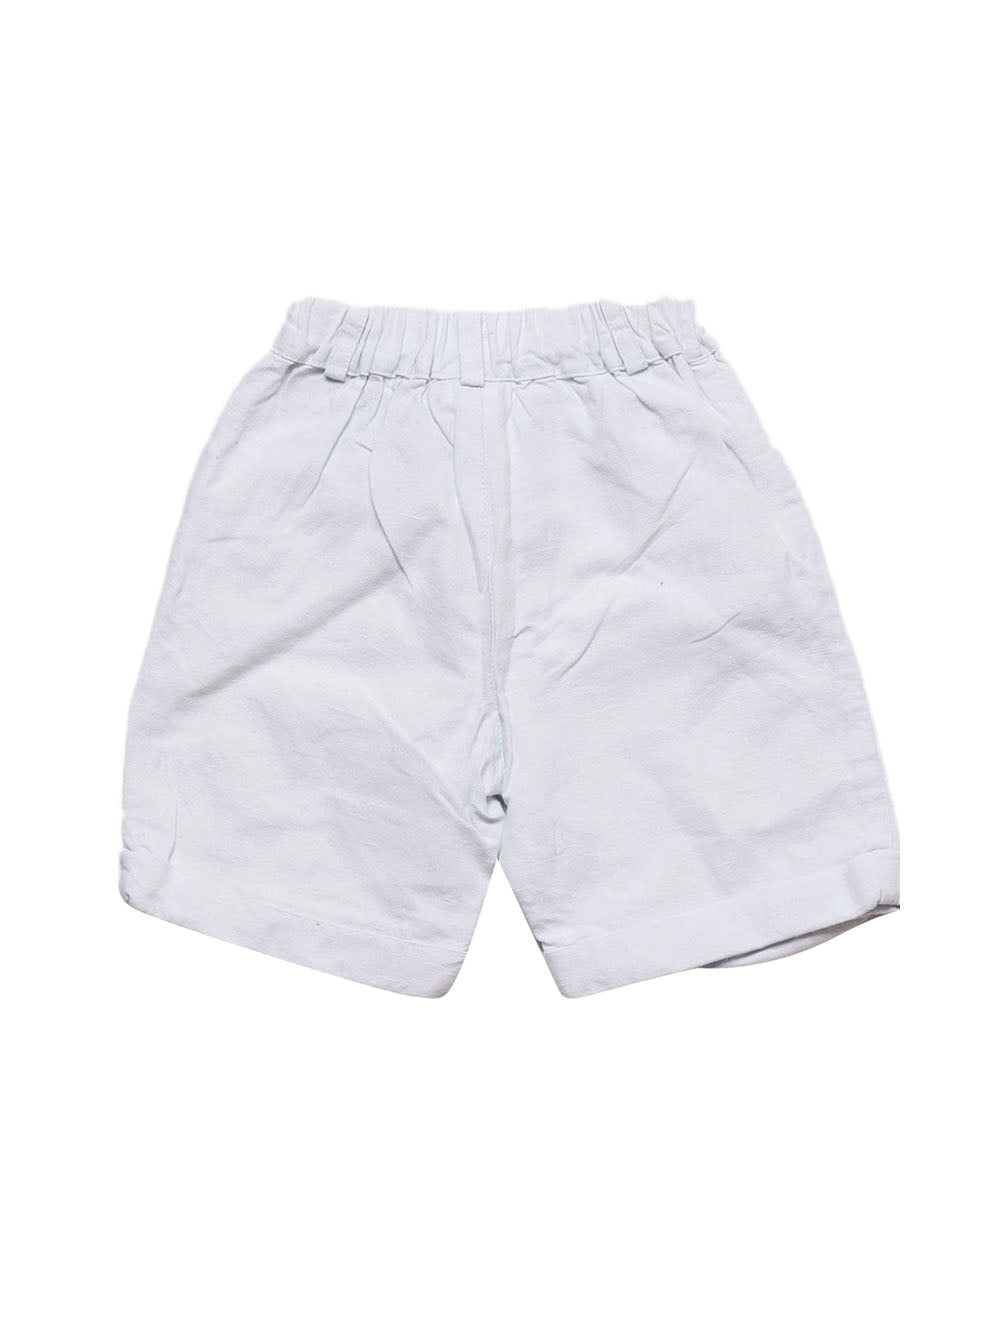 Back photo of Preloved Roberta Light-blue Boy's shorts - size 2-3 yrs